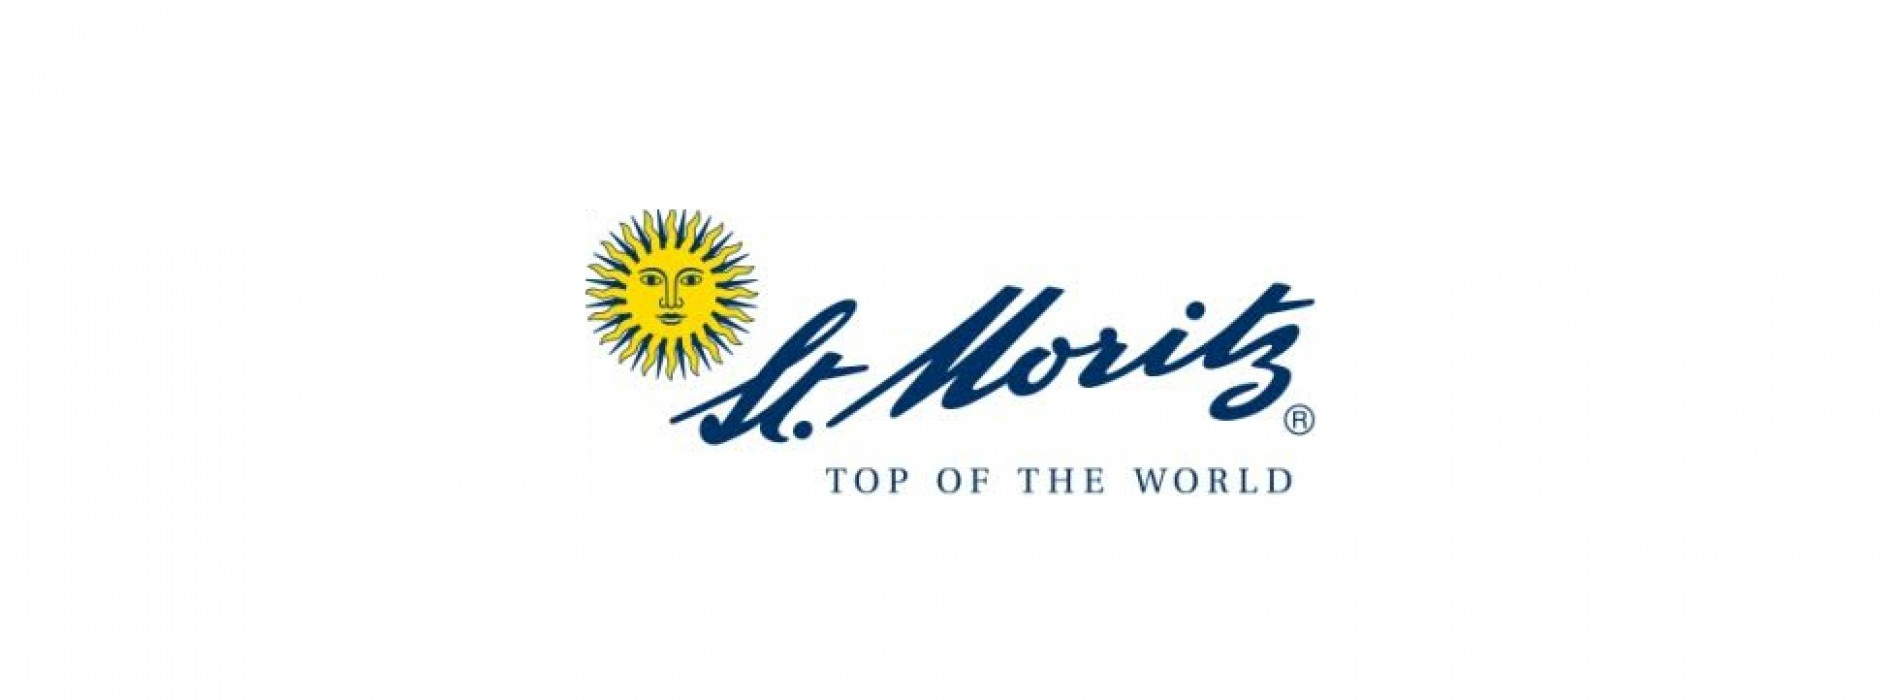 St. Moritz captivates with new highlights in the fields of events, culture, nightlife and cuisine